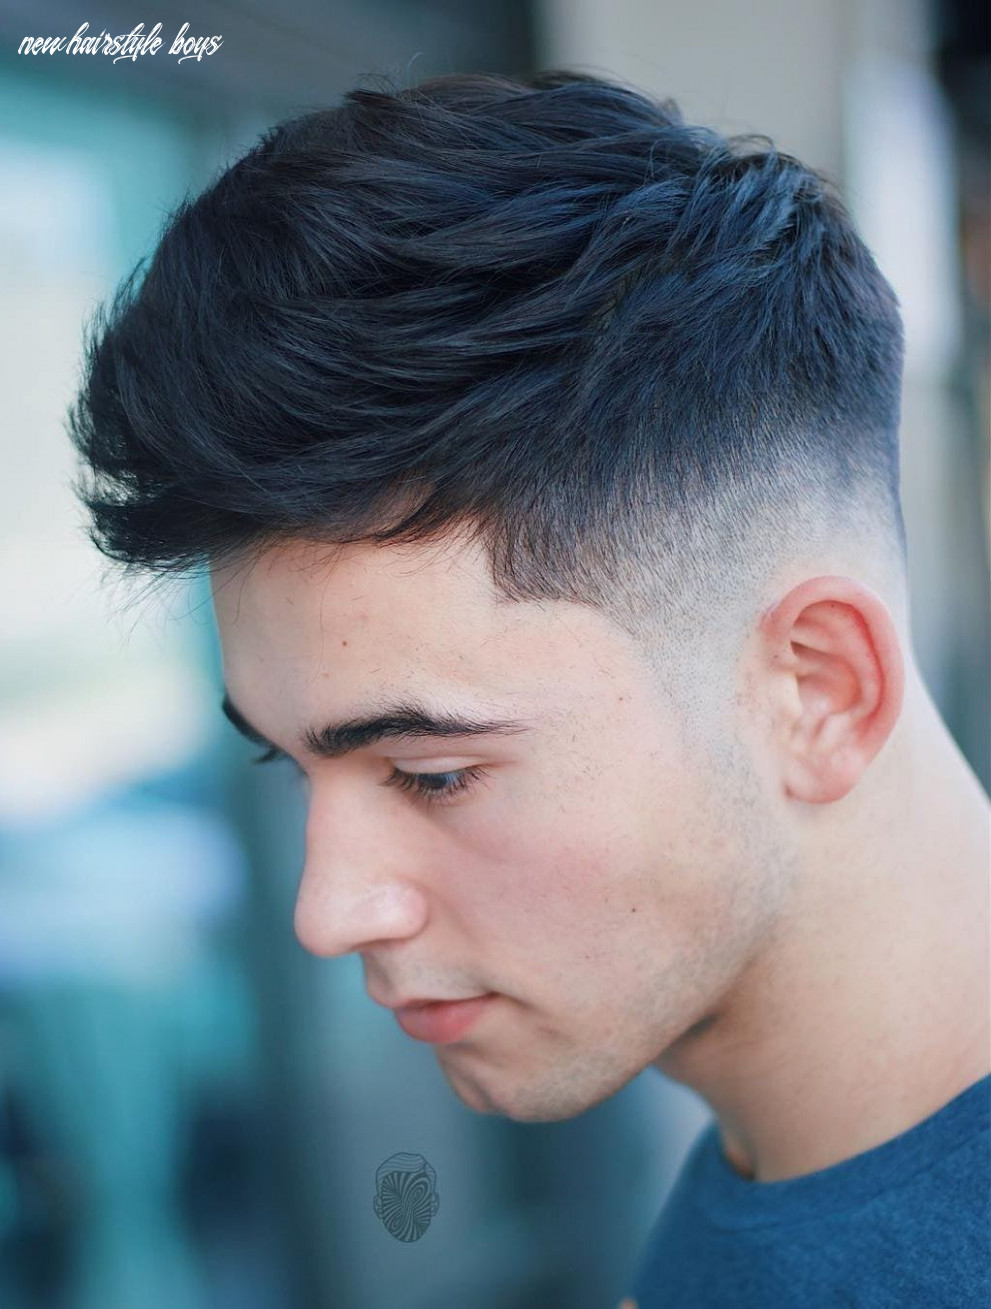 9 best hairstyles for teenage boys the ultimate guide 9 new hairstyle boys